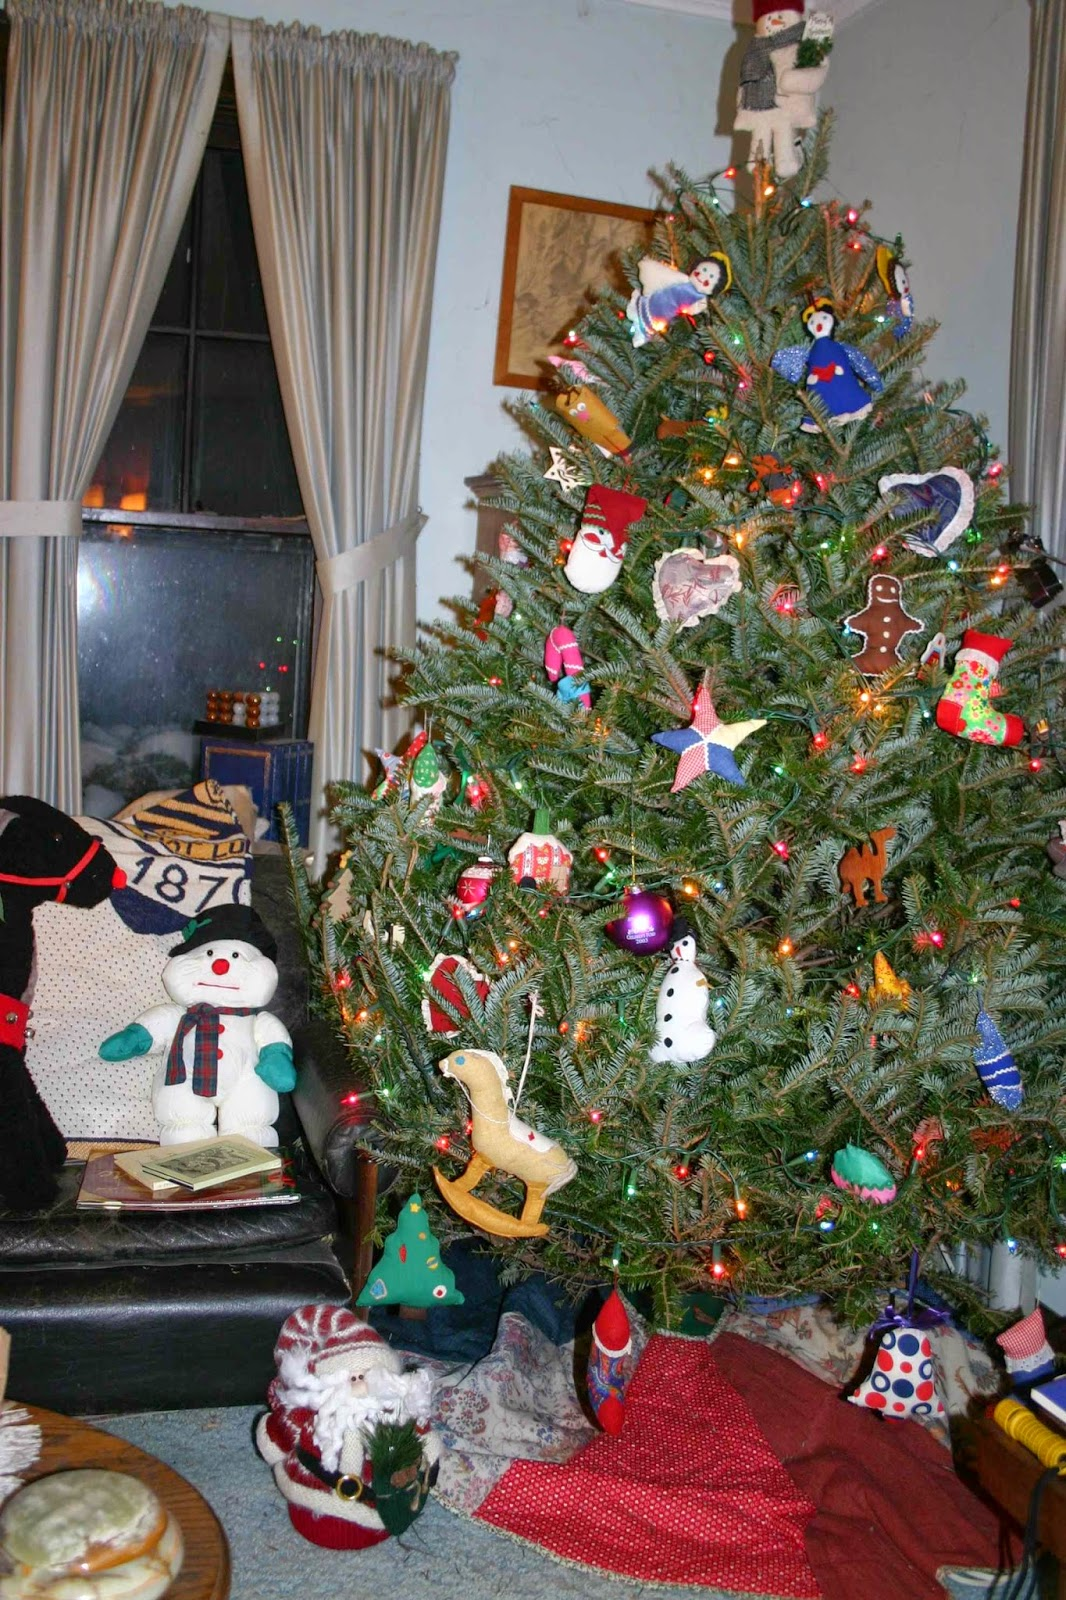 Life In The Middle Ages Christmas Trees - Medieval Christmas Tree